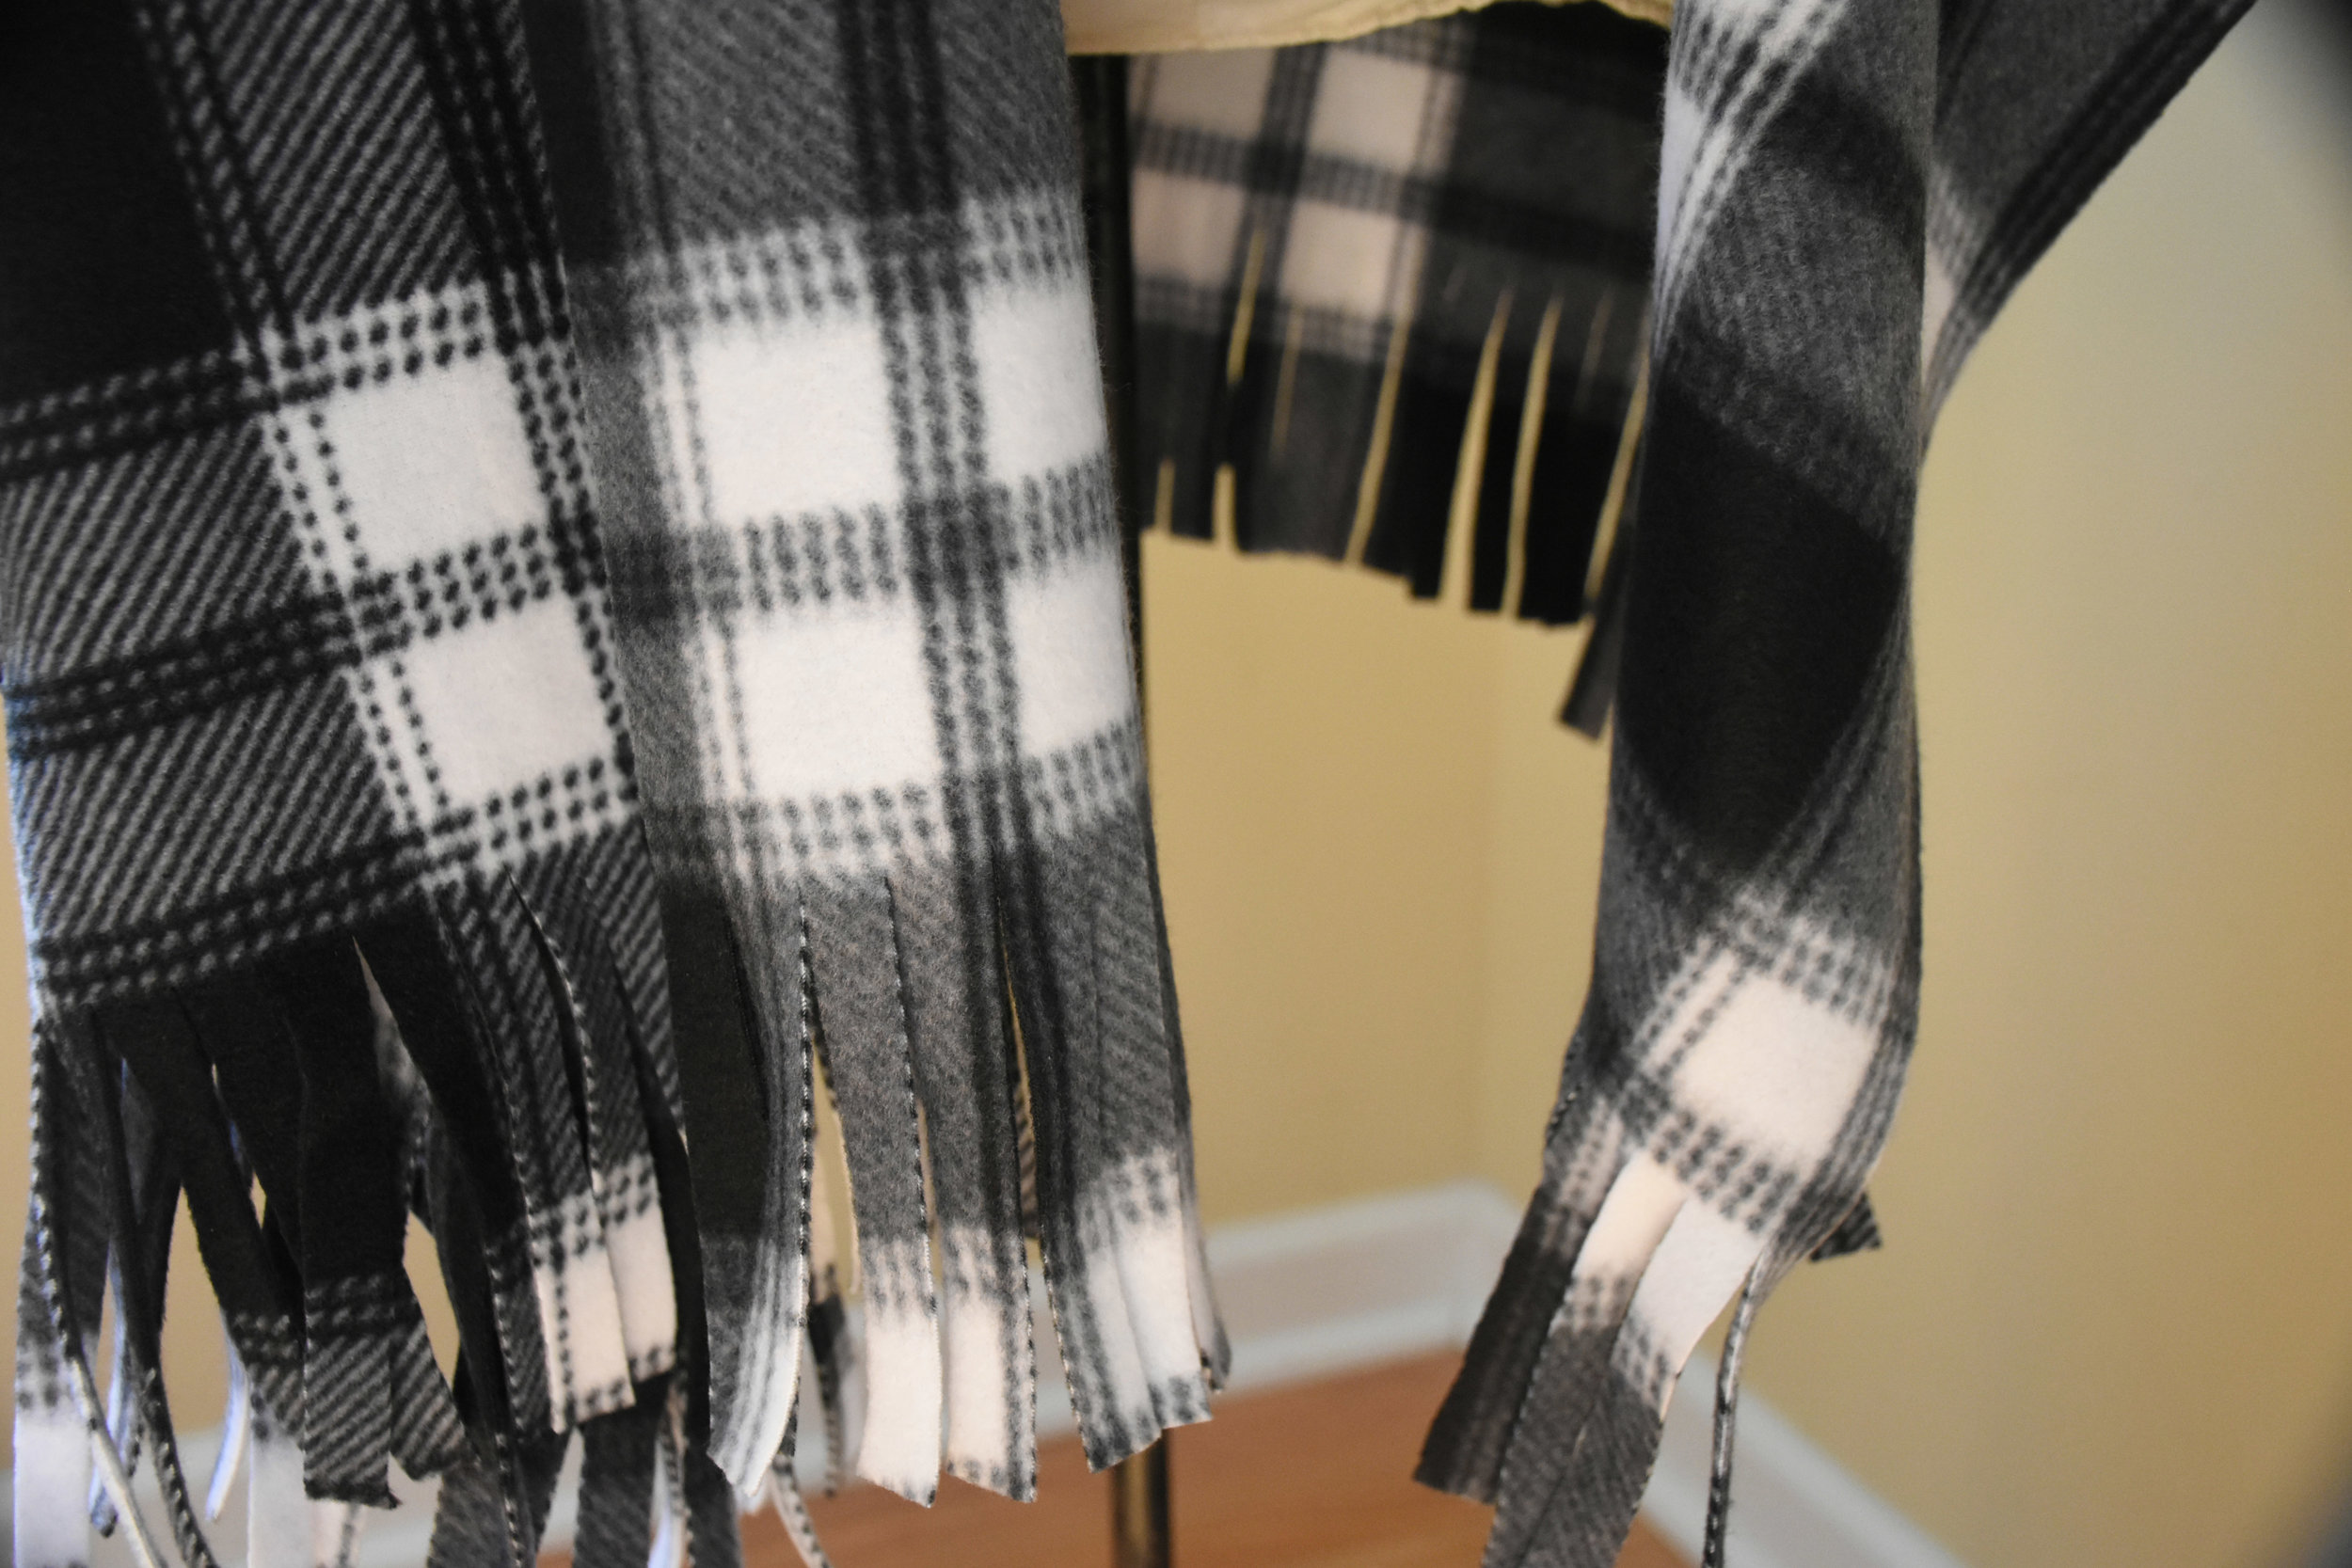 This is cut fringe in craft fleece. If you have a woven wool fabric, you can pull the threads to create fringe.